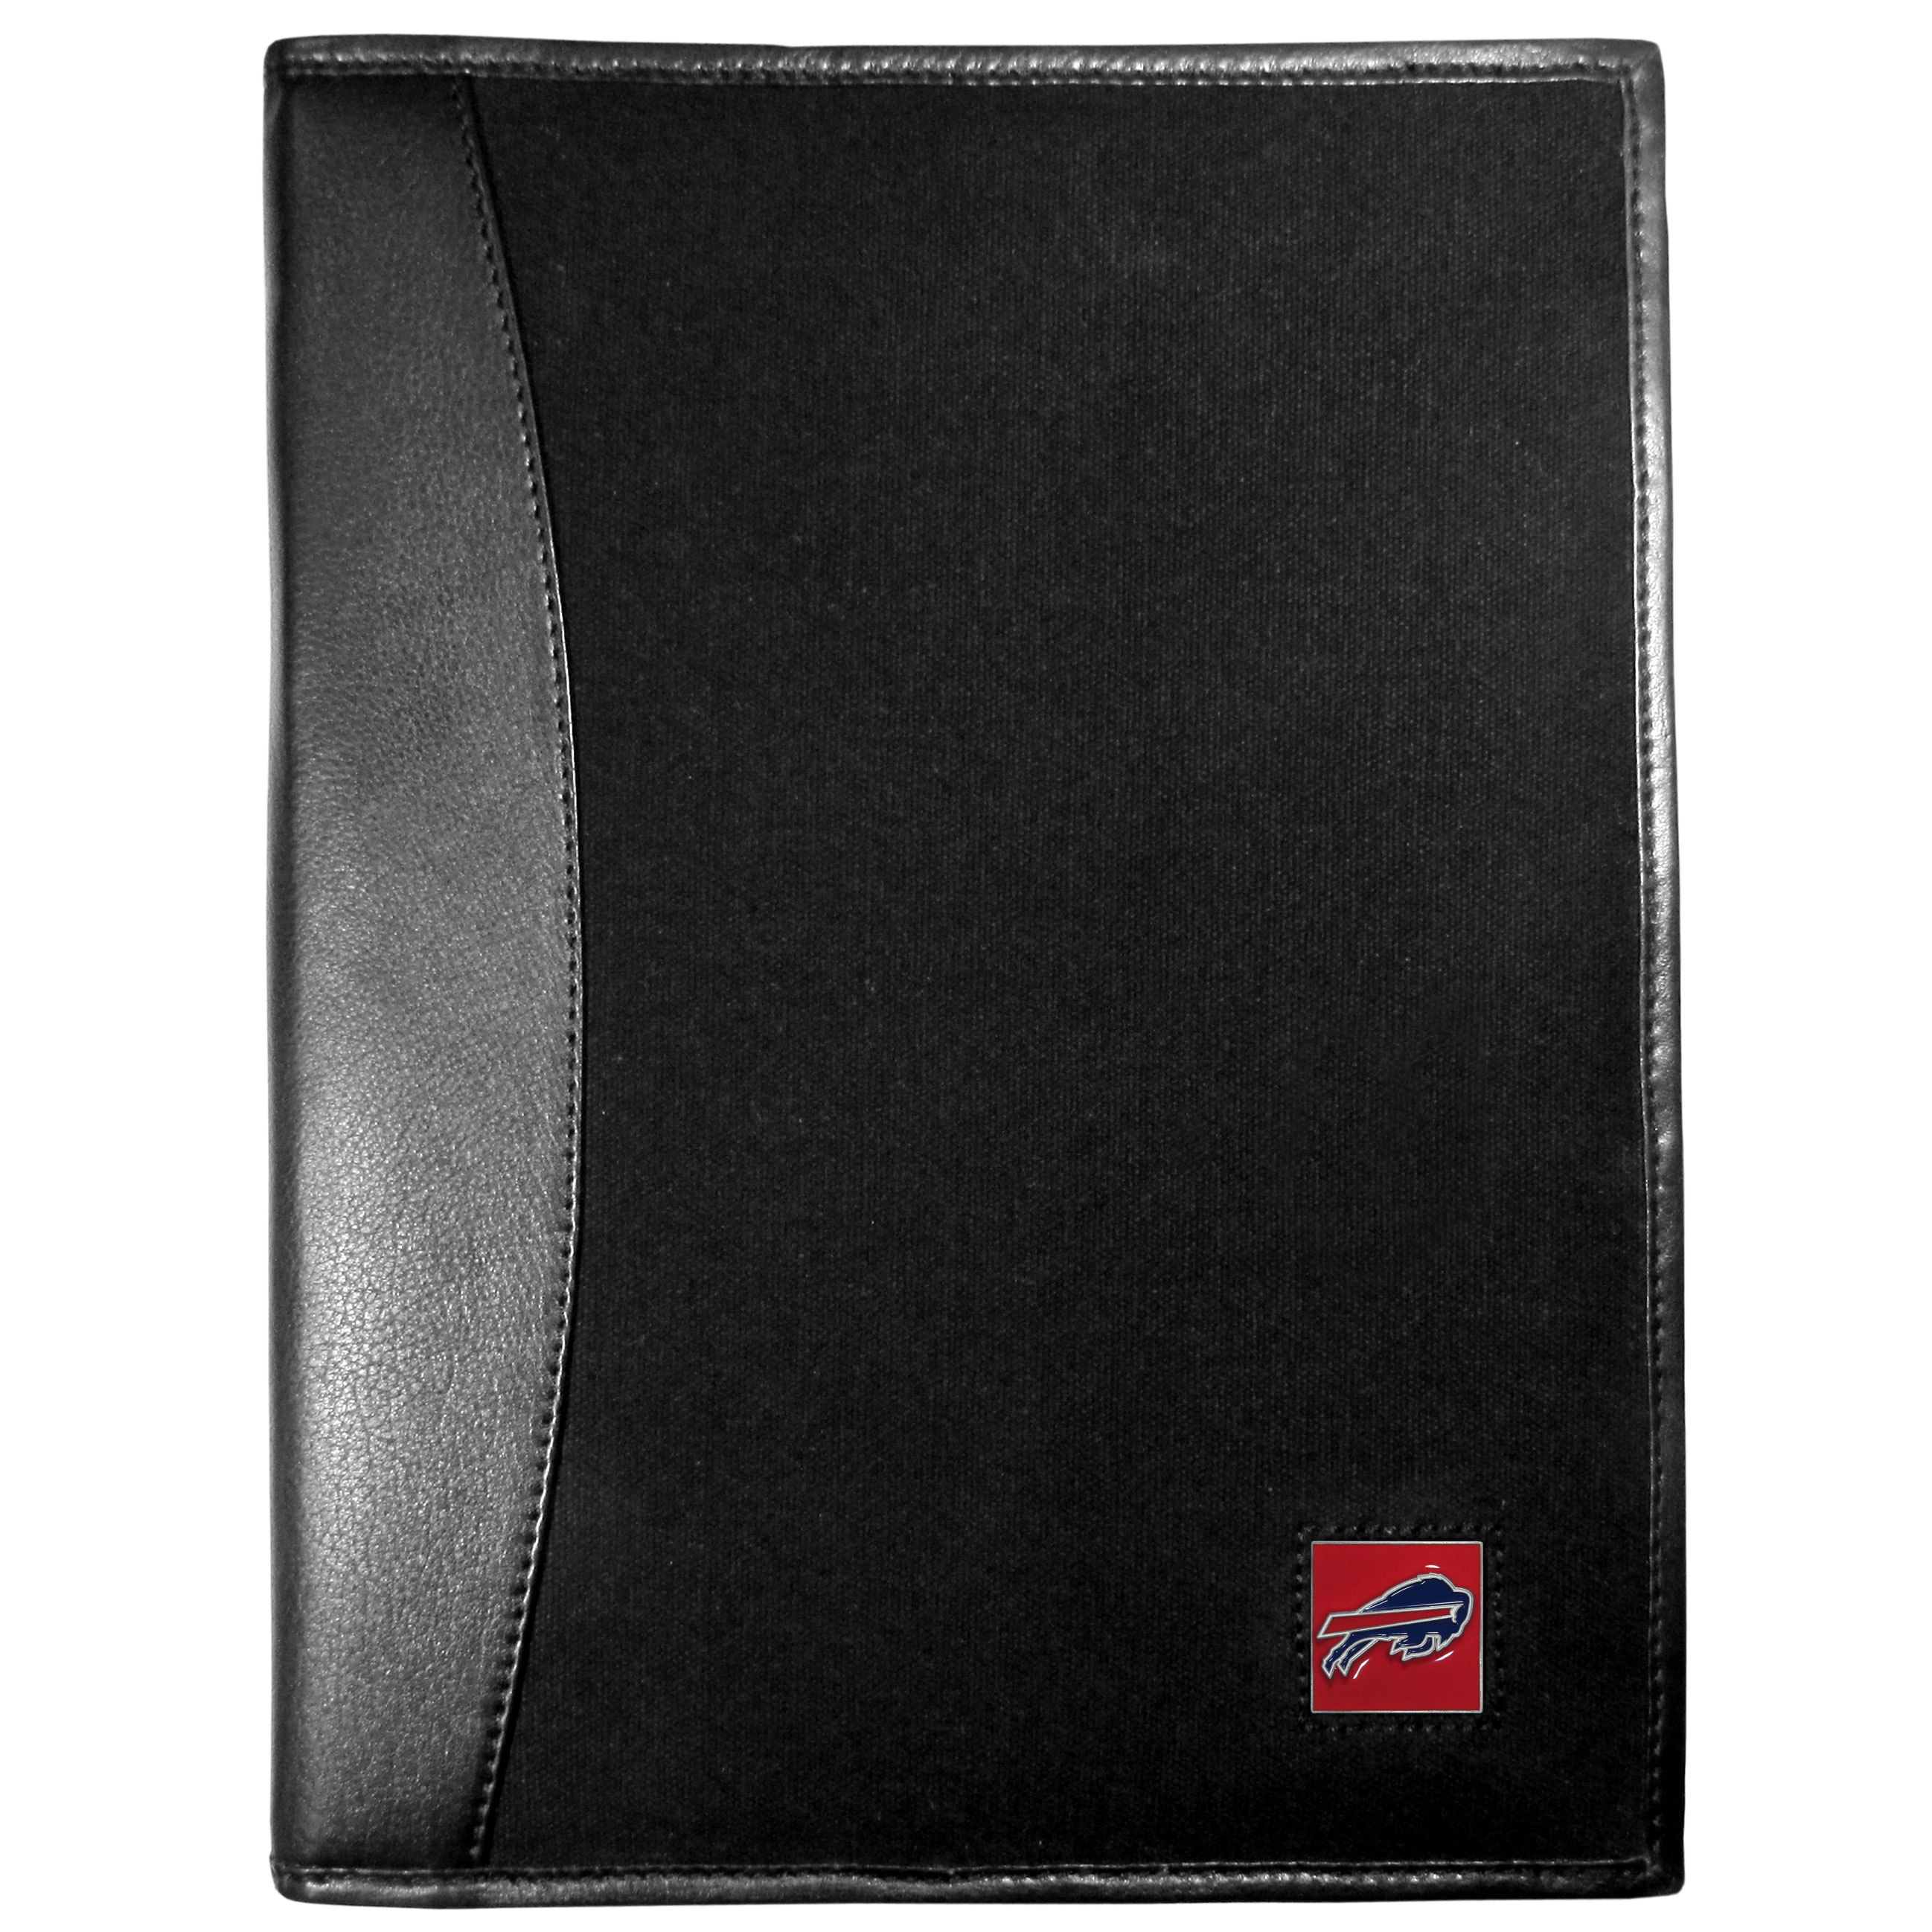 Buffalo Bills Leather and Canvas Padfolio - Our leather and canvas padfolio perfectly blends form and function. The attractive portfolio is bound in fine grain leather with an attractive canvas finish and the interior is a soft nylon. This high quality business accessory also features a fully cast metal Buffalo Bills emblem that is subtly set in the corner of the organizer. It is packed with features like 6 card slots for badges, business cards, hotel keys or credit cards and ID with a large pocket for loose papers and a writing tablet slot making it a must-have for the professional on the go.